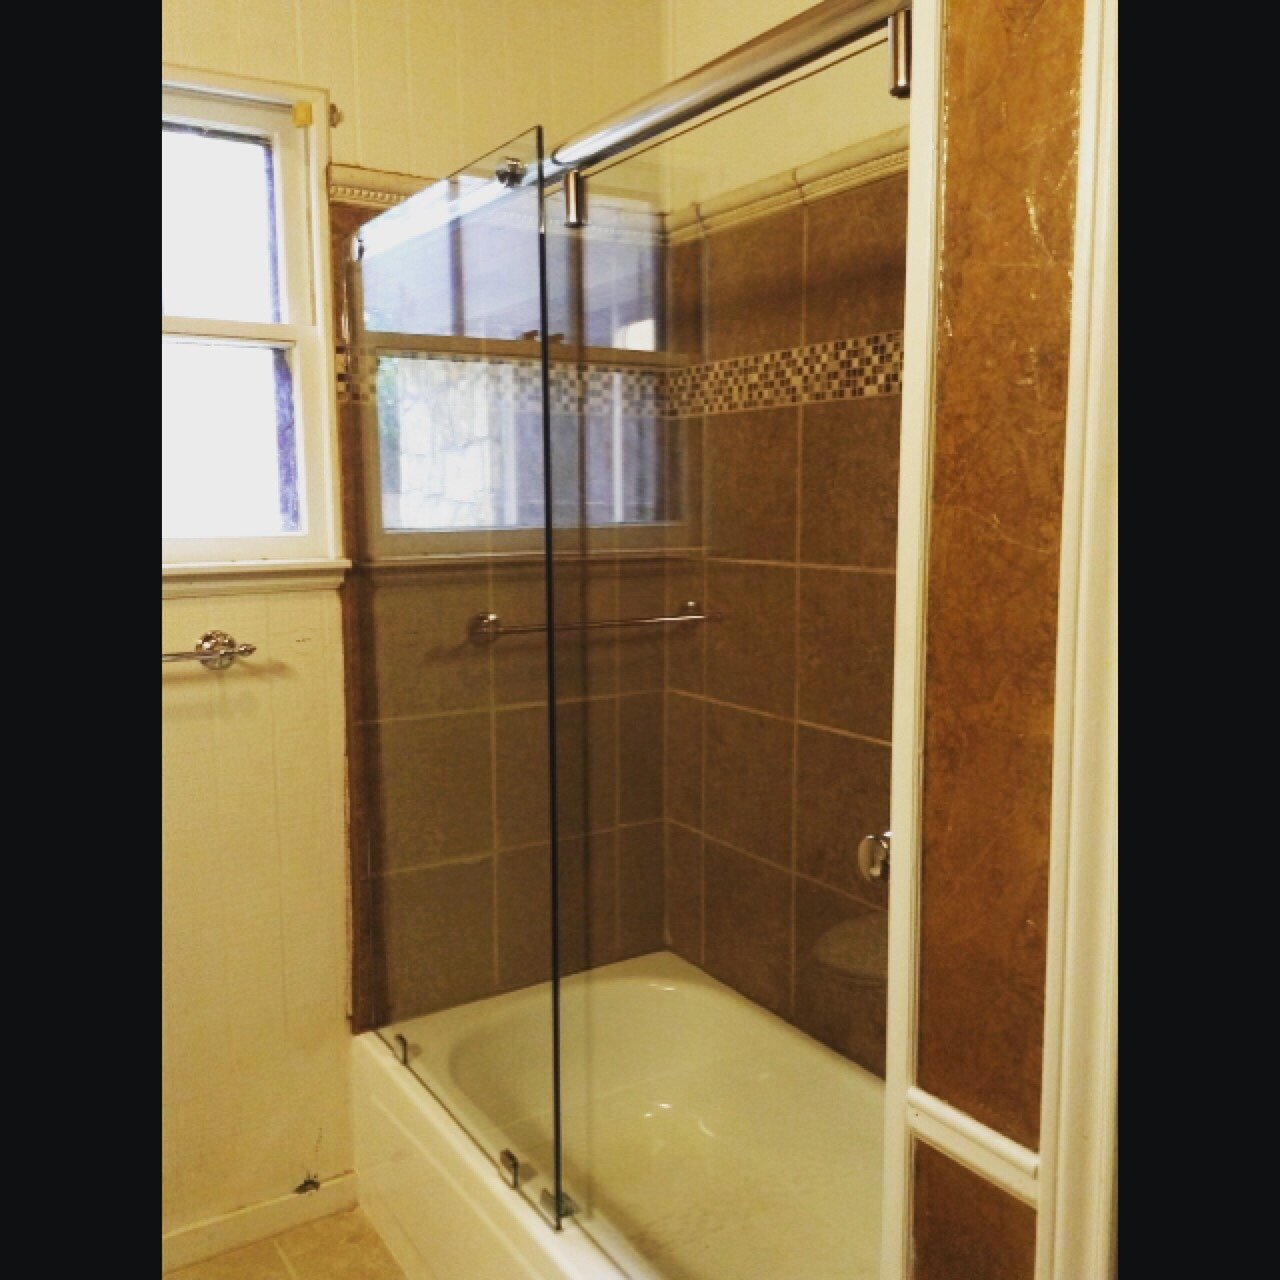 Photo 7 of 7 in Sliding Shower Doors - Dwell